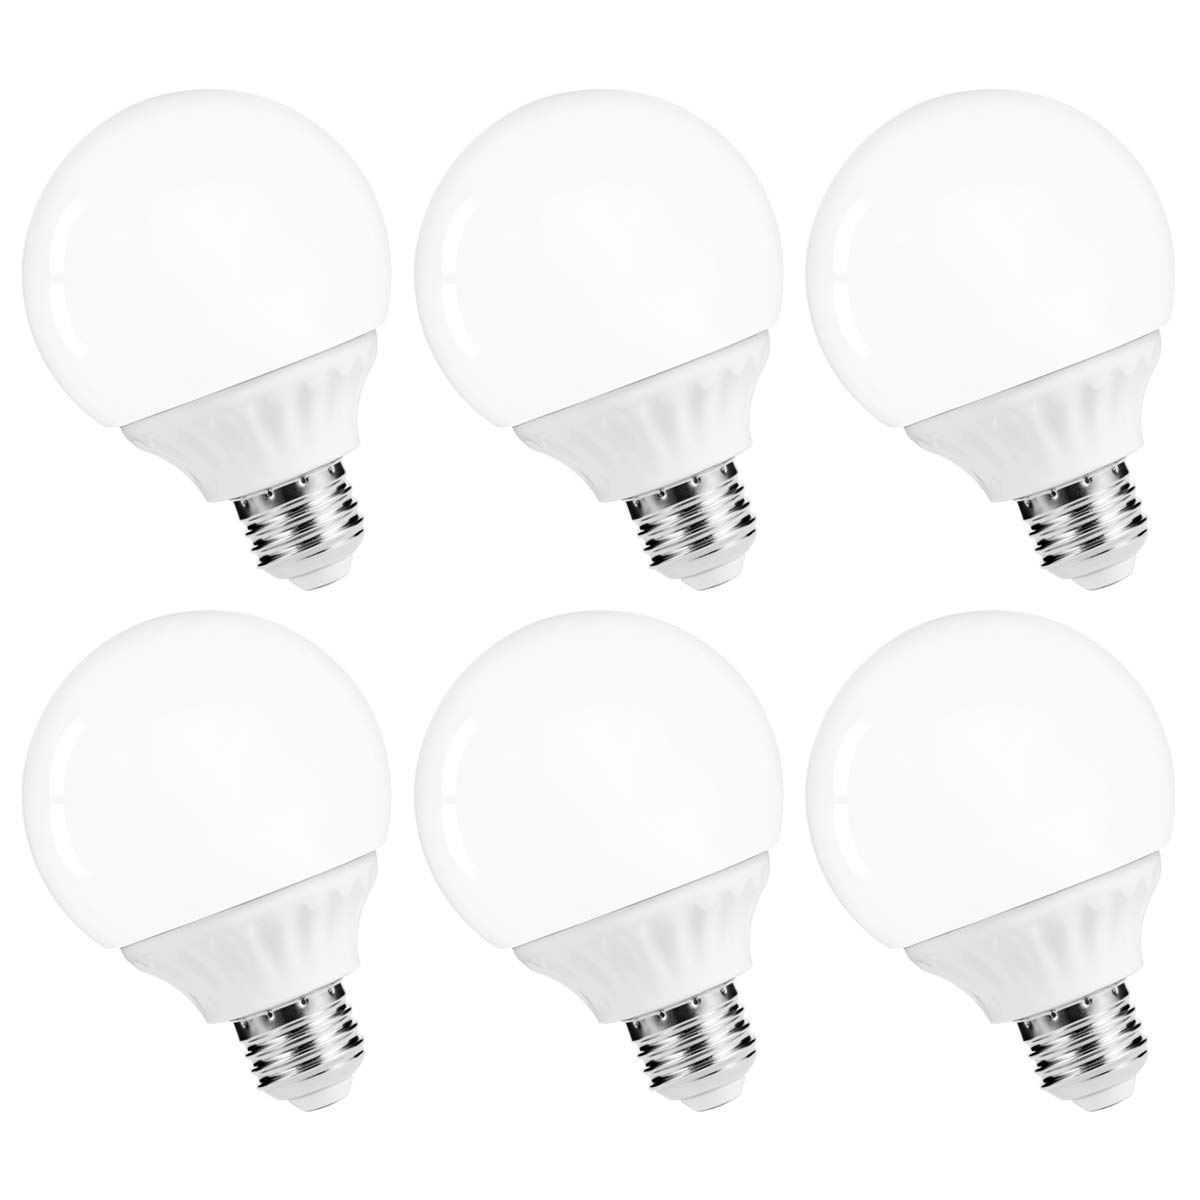 LOHAS LED Vanity Light Globe Bulb, 40W Equivalent LED G25 Bulbs Daylight 5000k, Bathroom Vanity Lighting LED Make Up Mirror Light, Brightness 500Lm Lights E26 Edison Base for Home, Not-Dimmable 6Pack